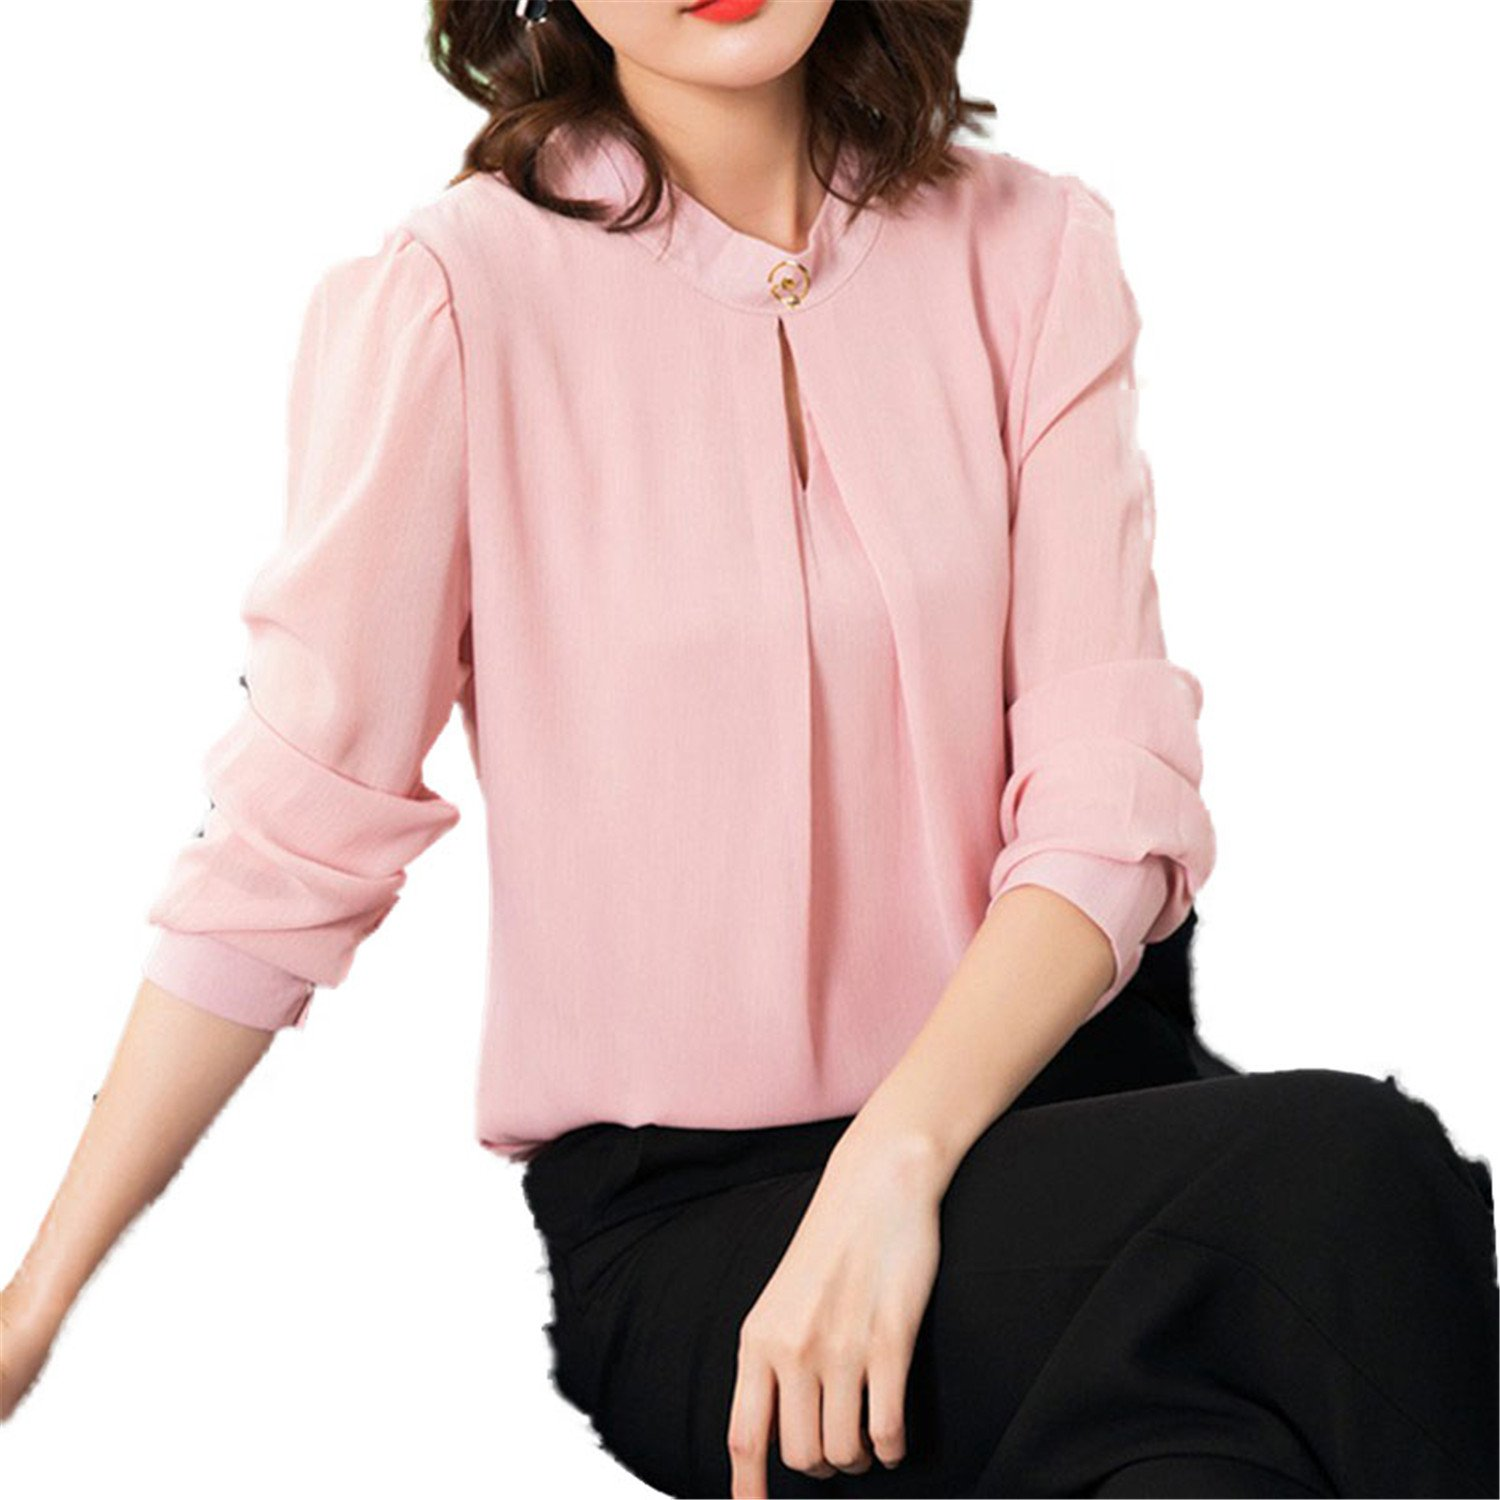 OUXIANGJU Women Spring Chiffon Blouse Casual Long Sleeve O-Neck Tops Solid Color Office Shirts at Amazon Womens Clothing store: